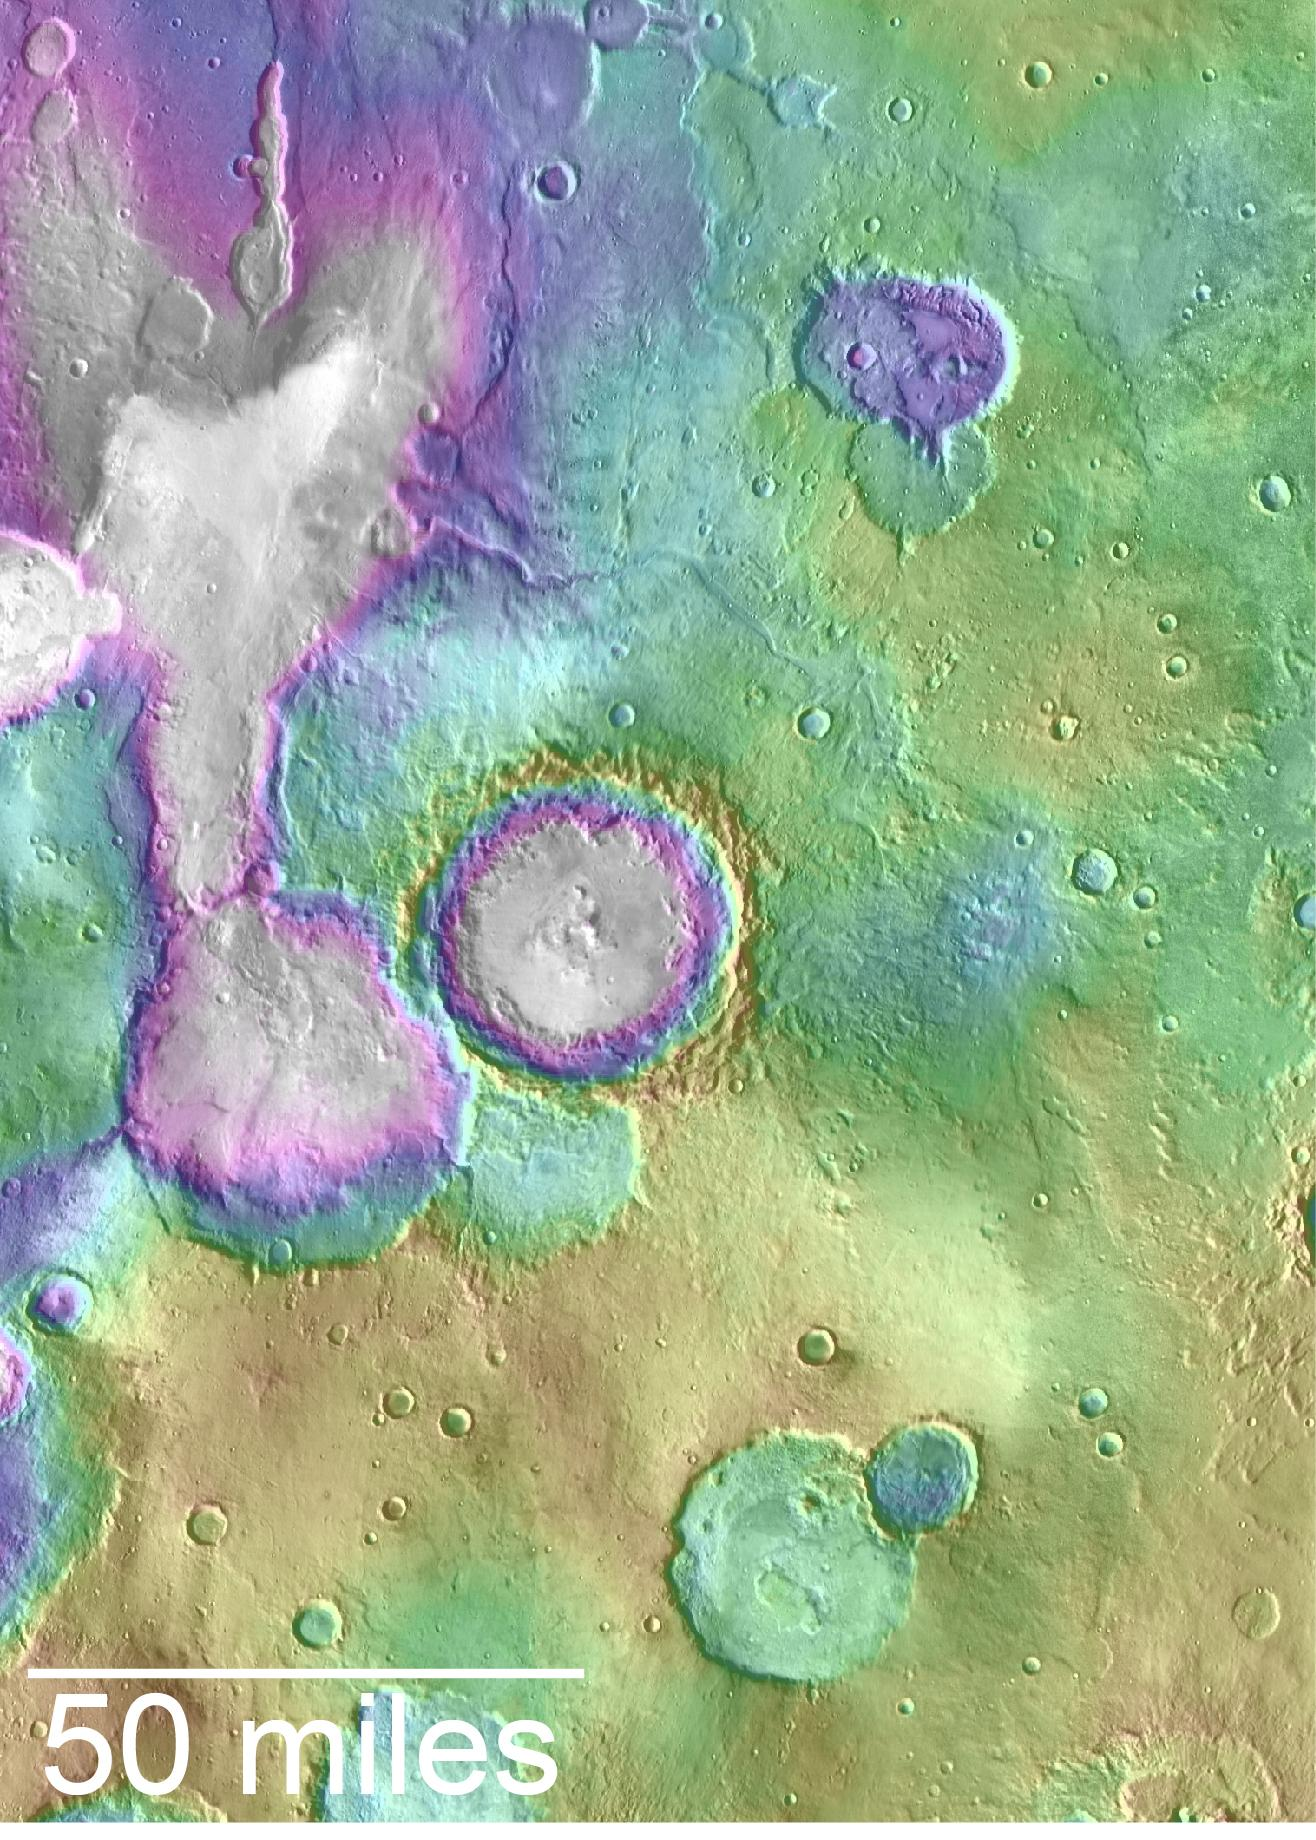 Huge Mars Lakes Formed Much More Recently Than Thought